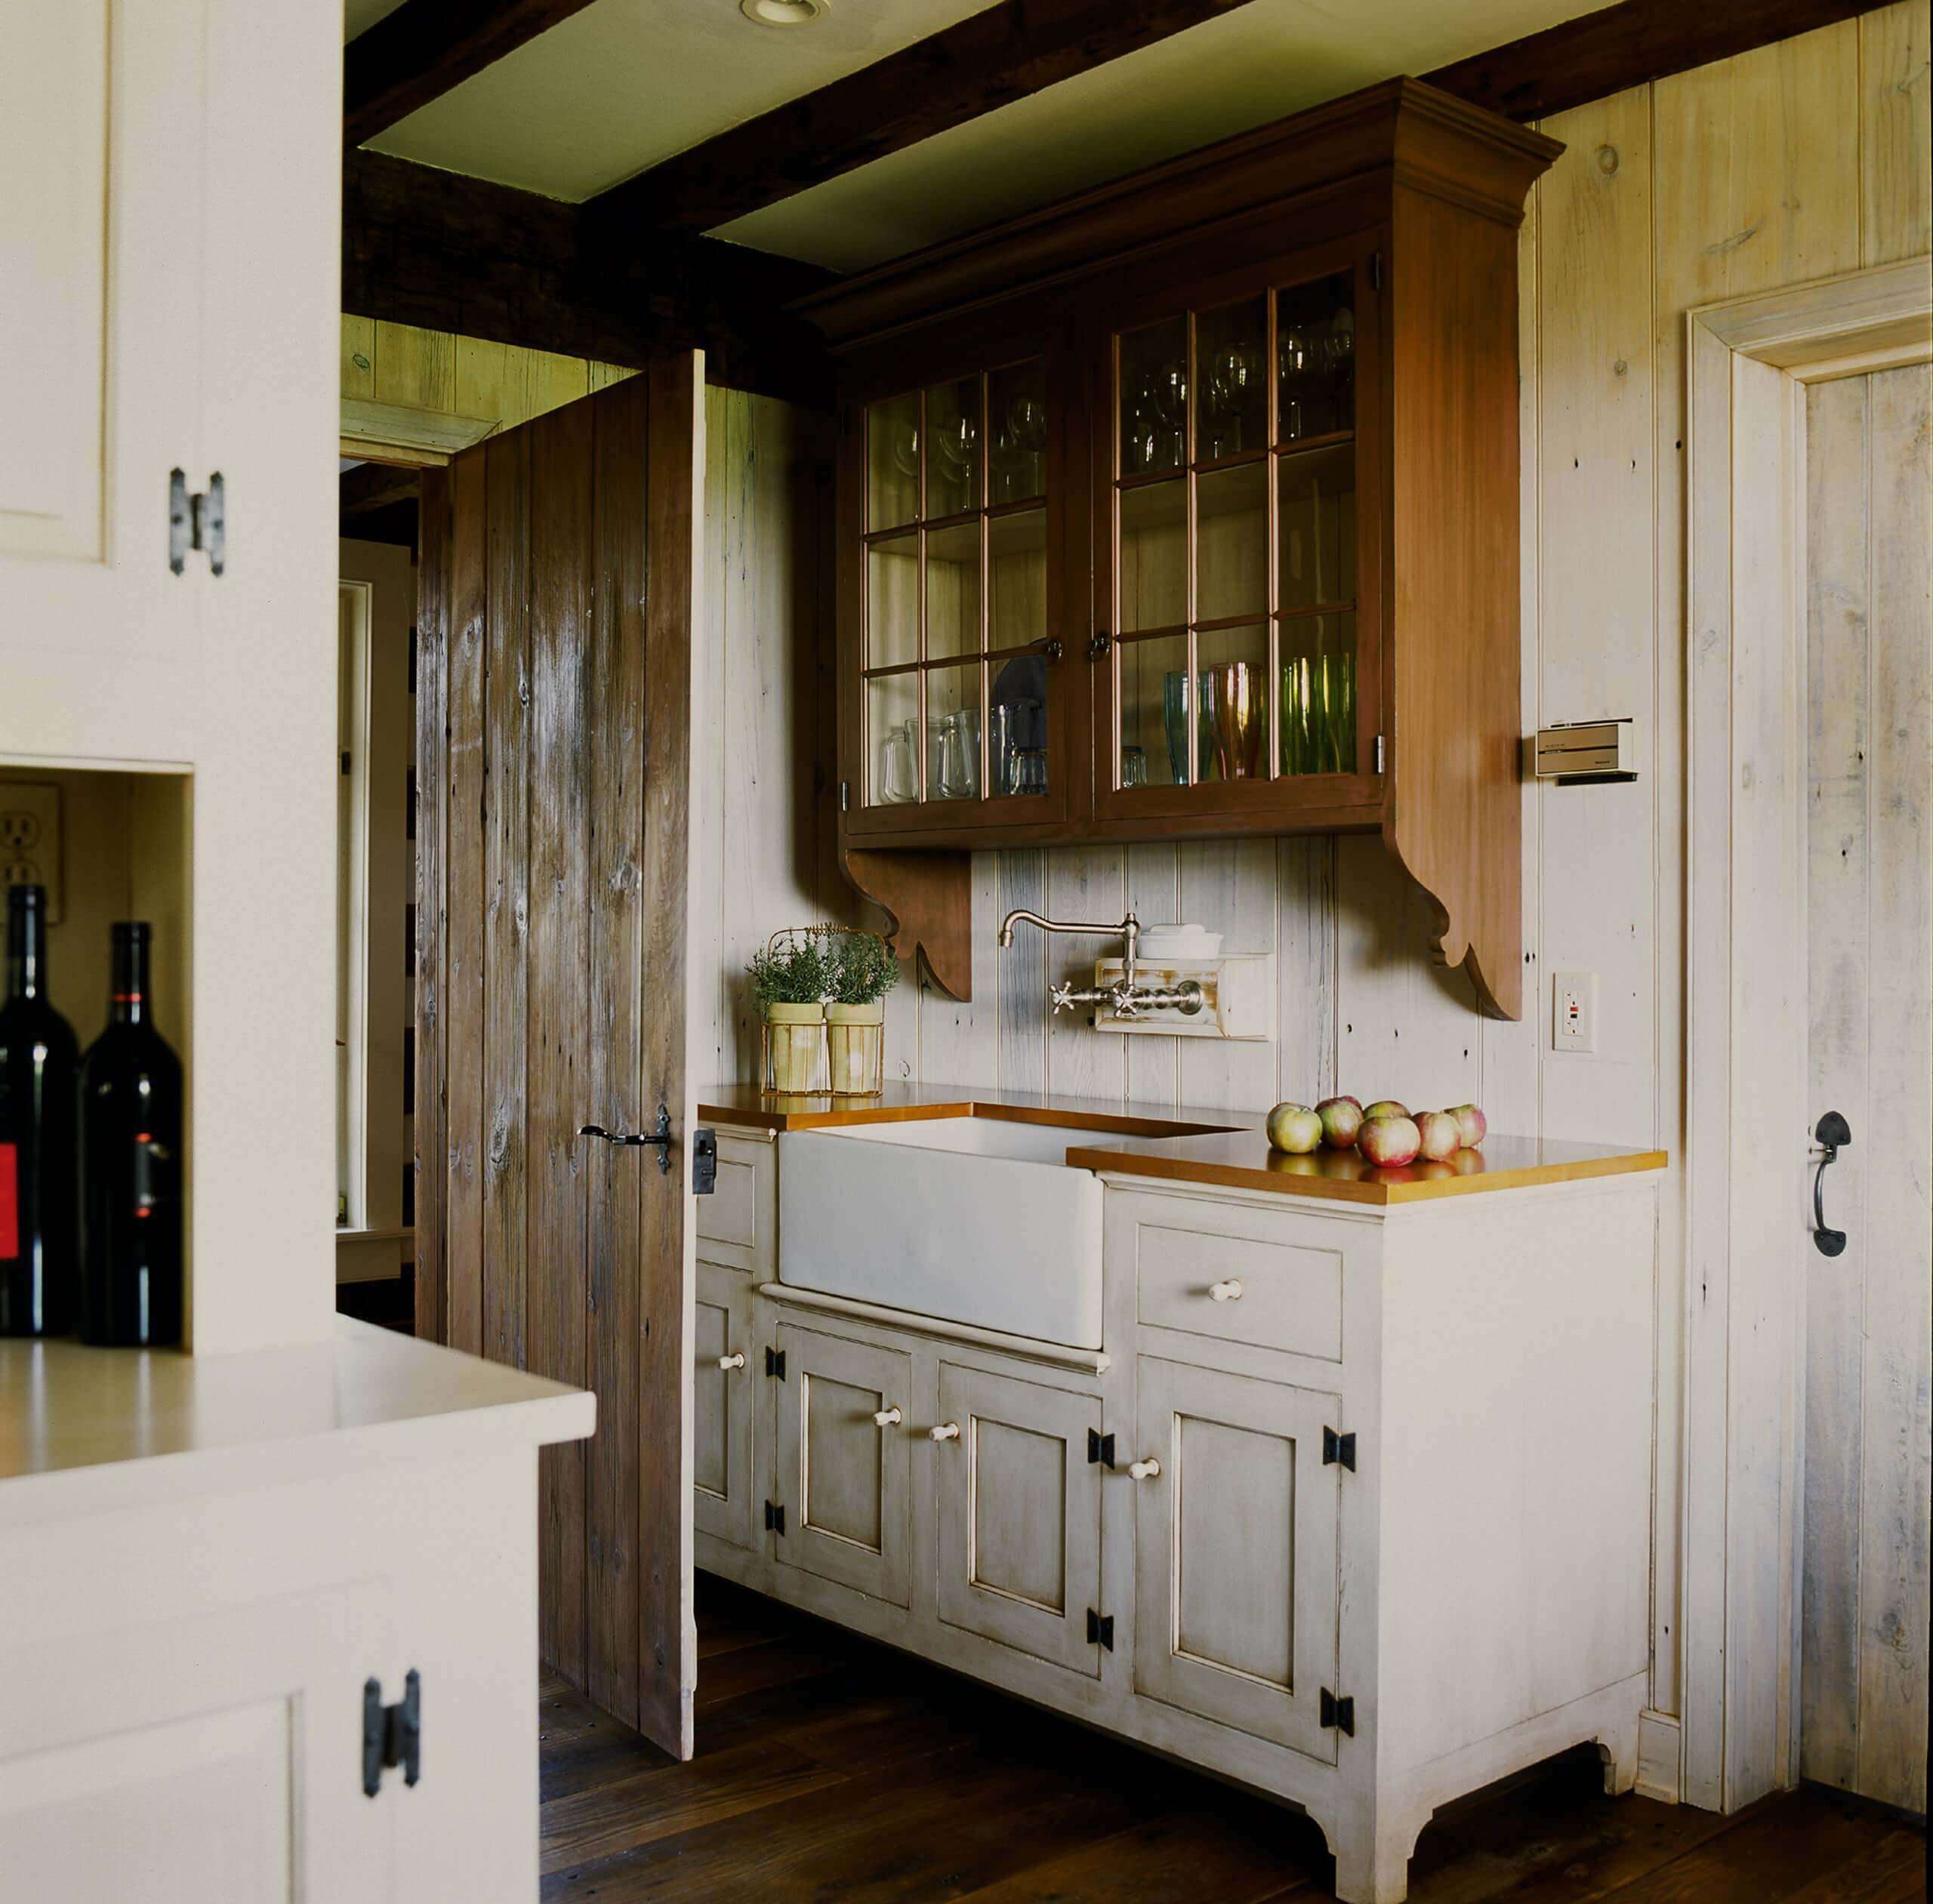 Farmhouse Kitchen Cabinets: 23 Best Ideas Of Rustic Kitchen Cabinet You'll Want To Copy